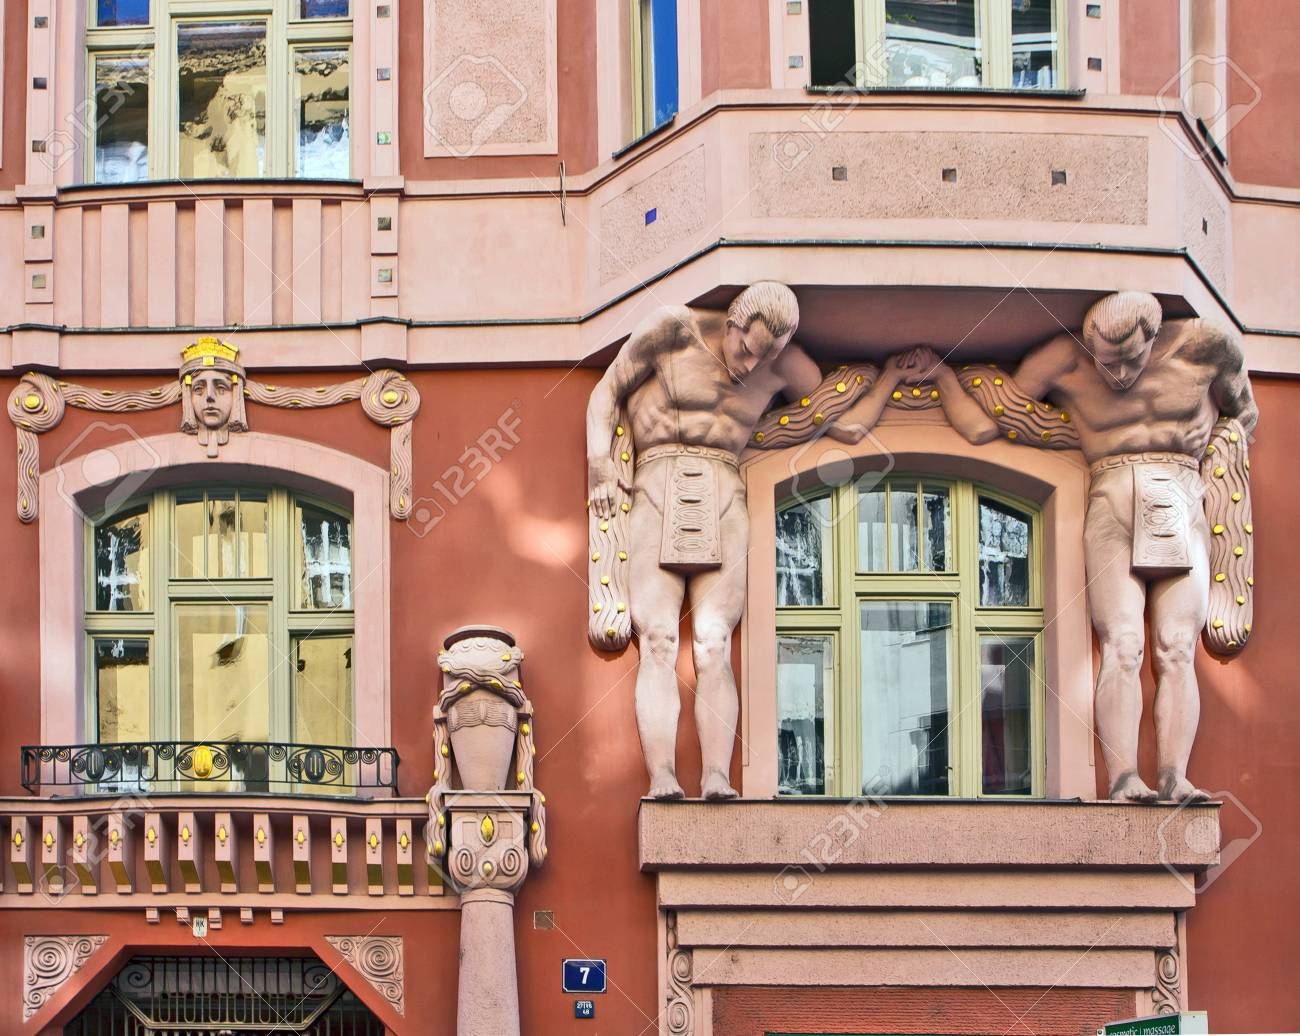 Art nouveau palace in Prague center, detail of figures and ..